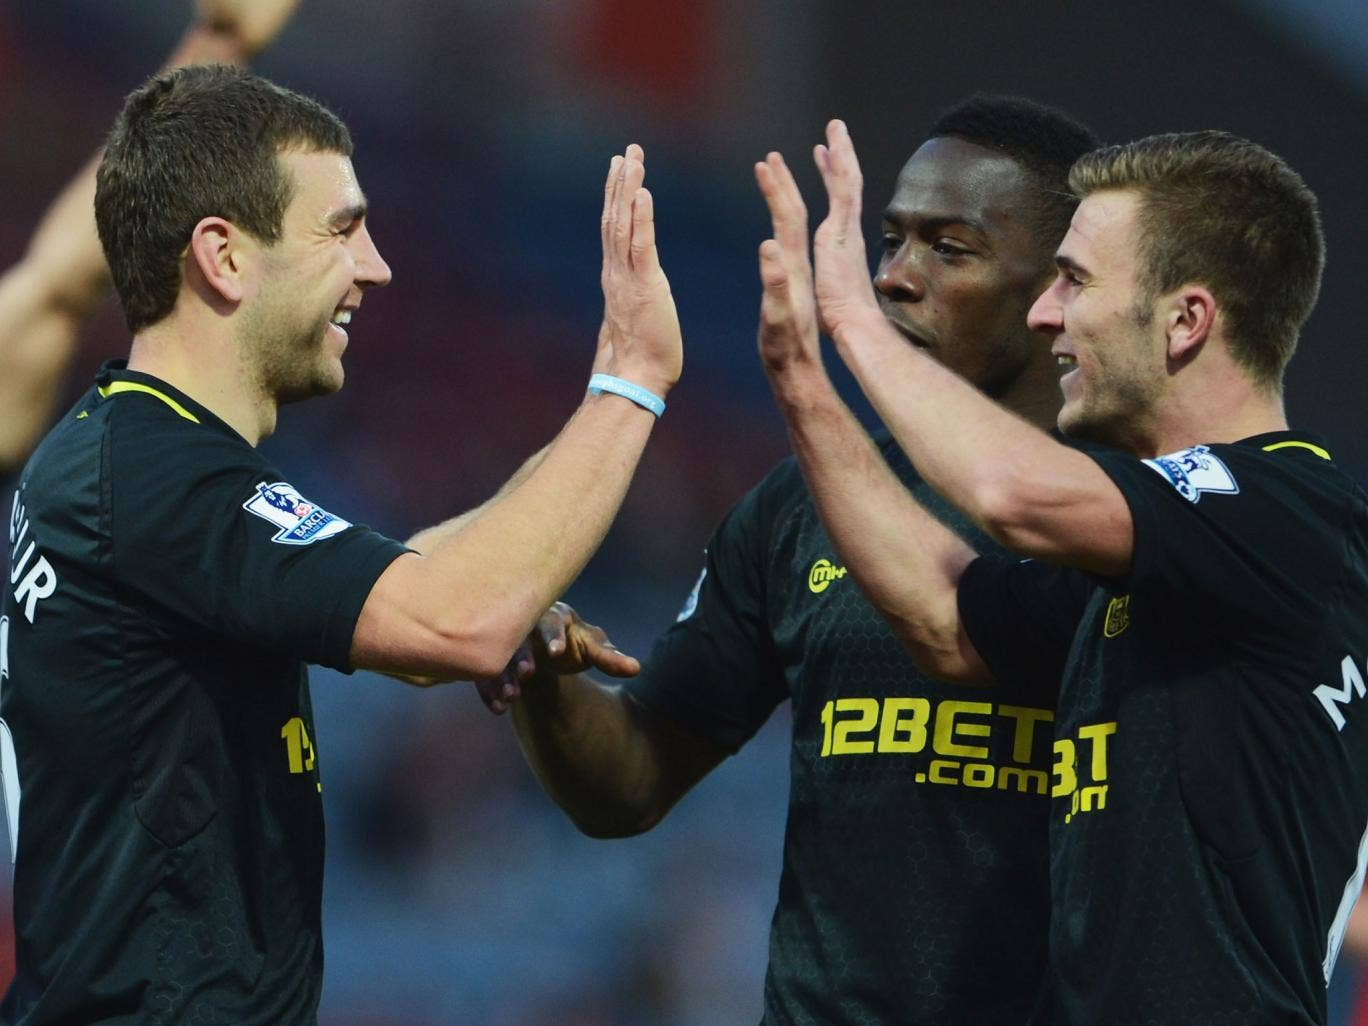 James McArthur of Wigan Athletic (L) celebrates with Maynor Figueroa (C) and Callum McManaman (R) as he scores their third goal